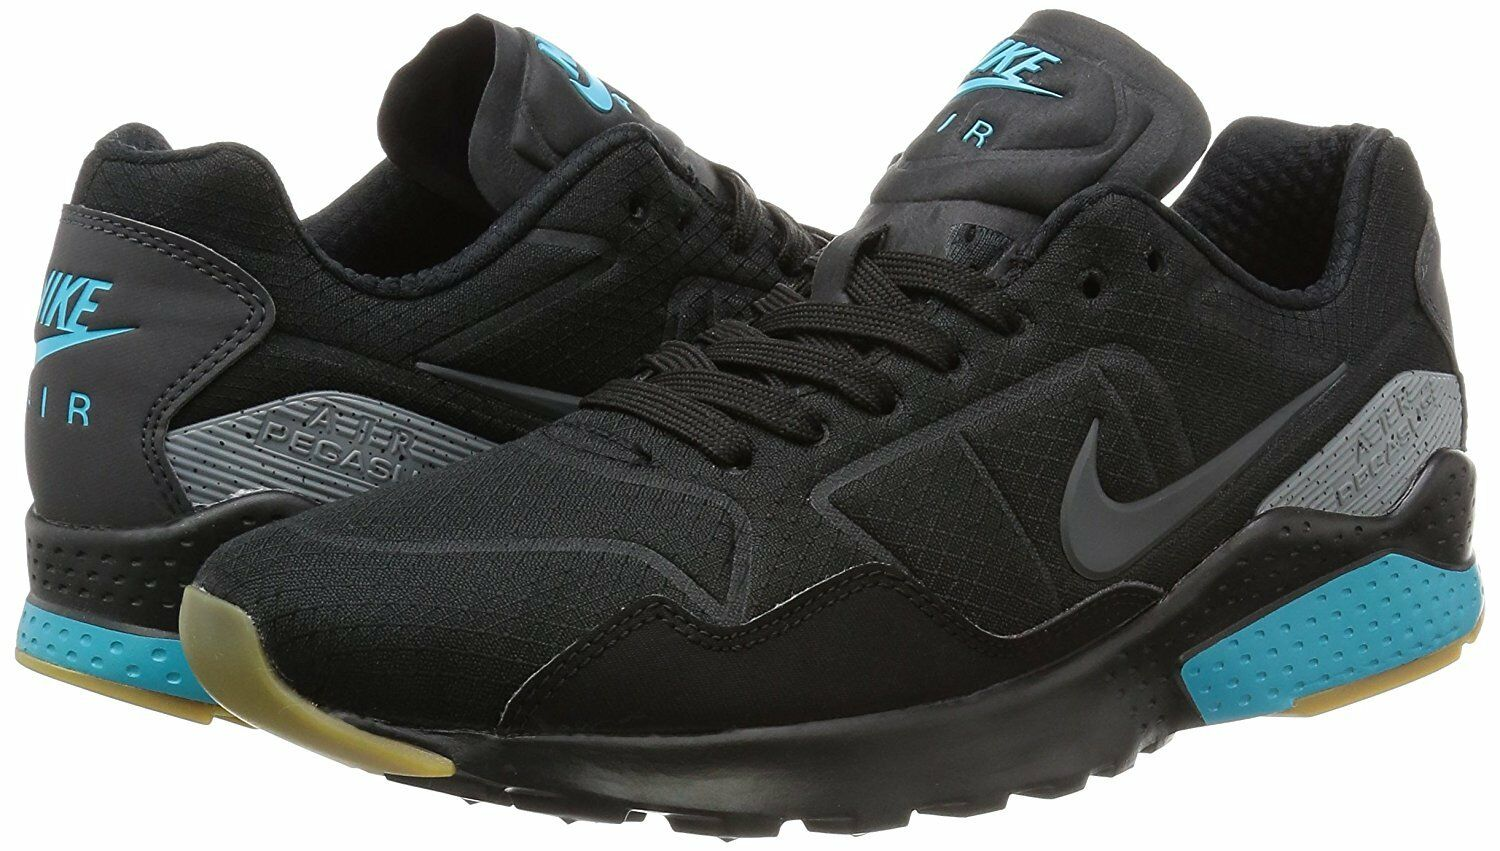 Men's Nike Zoom Pegasus 92 Casual Shoes, 844652 002 Size 13 Black/Anthracite/Gam